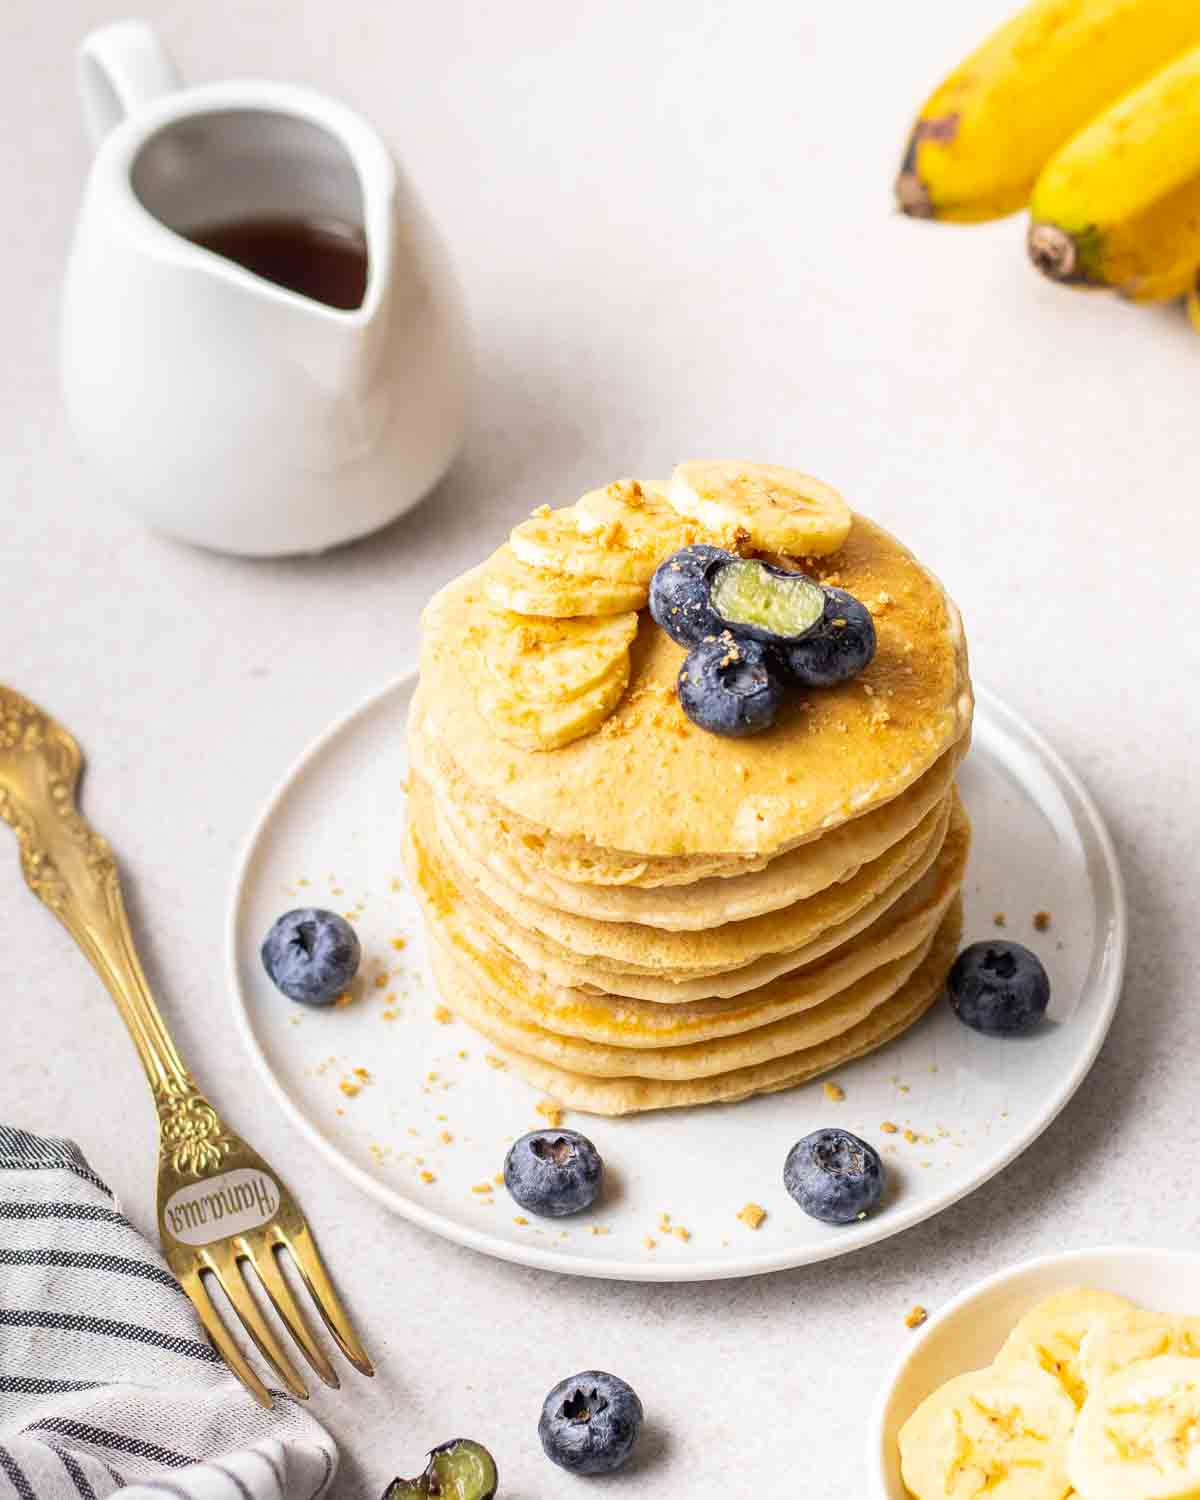 A stack of pancakes topped with banana and blueberries with a fork, jug if maple syrup and banana beside.